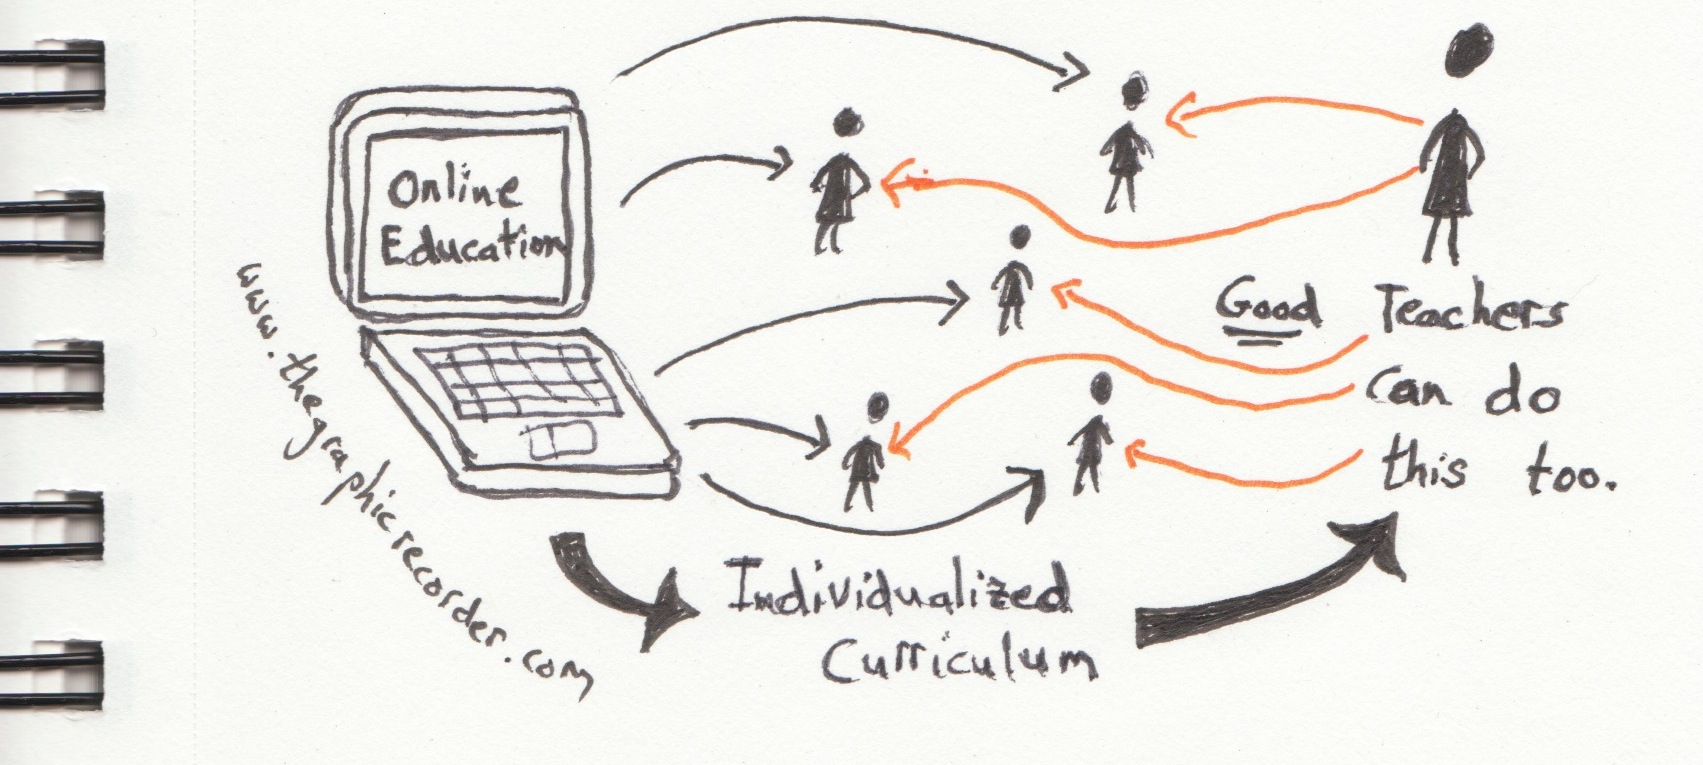 Sketch notes of Ken Robinson's idea that both online education and good teachers can provide an individualized curriculum for students..